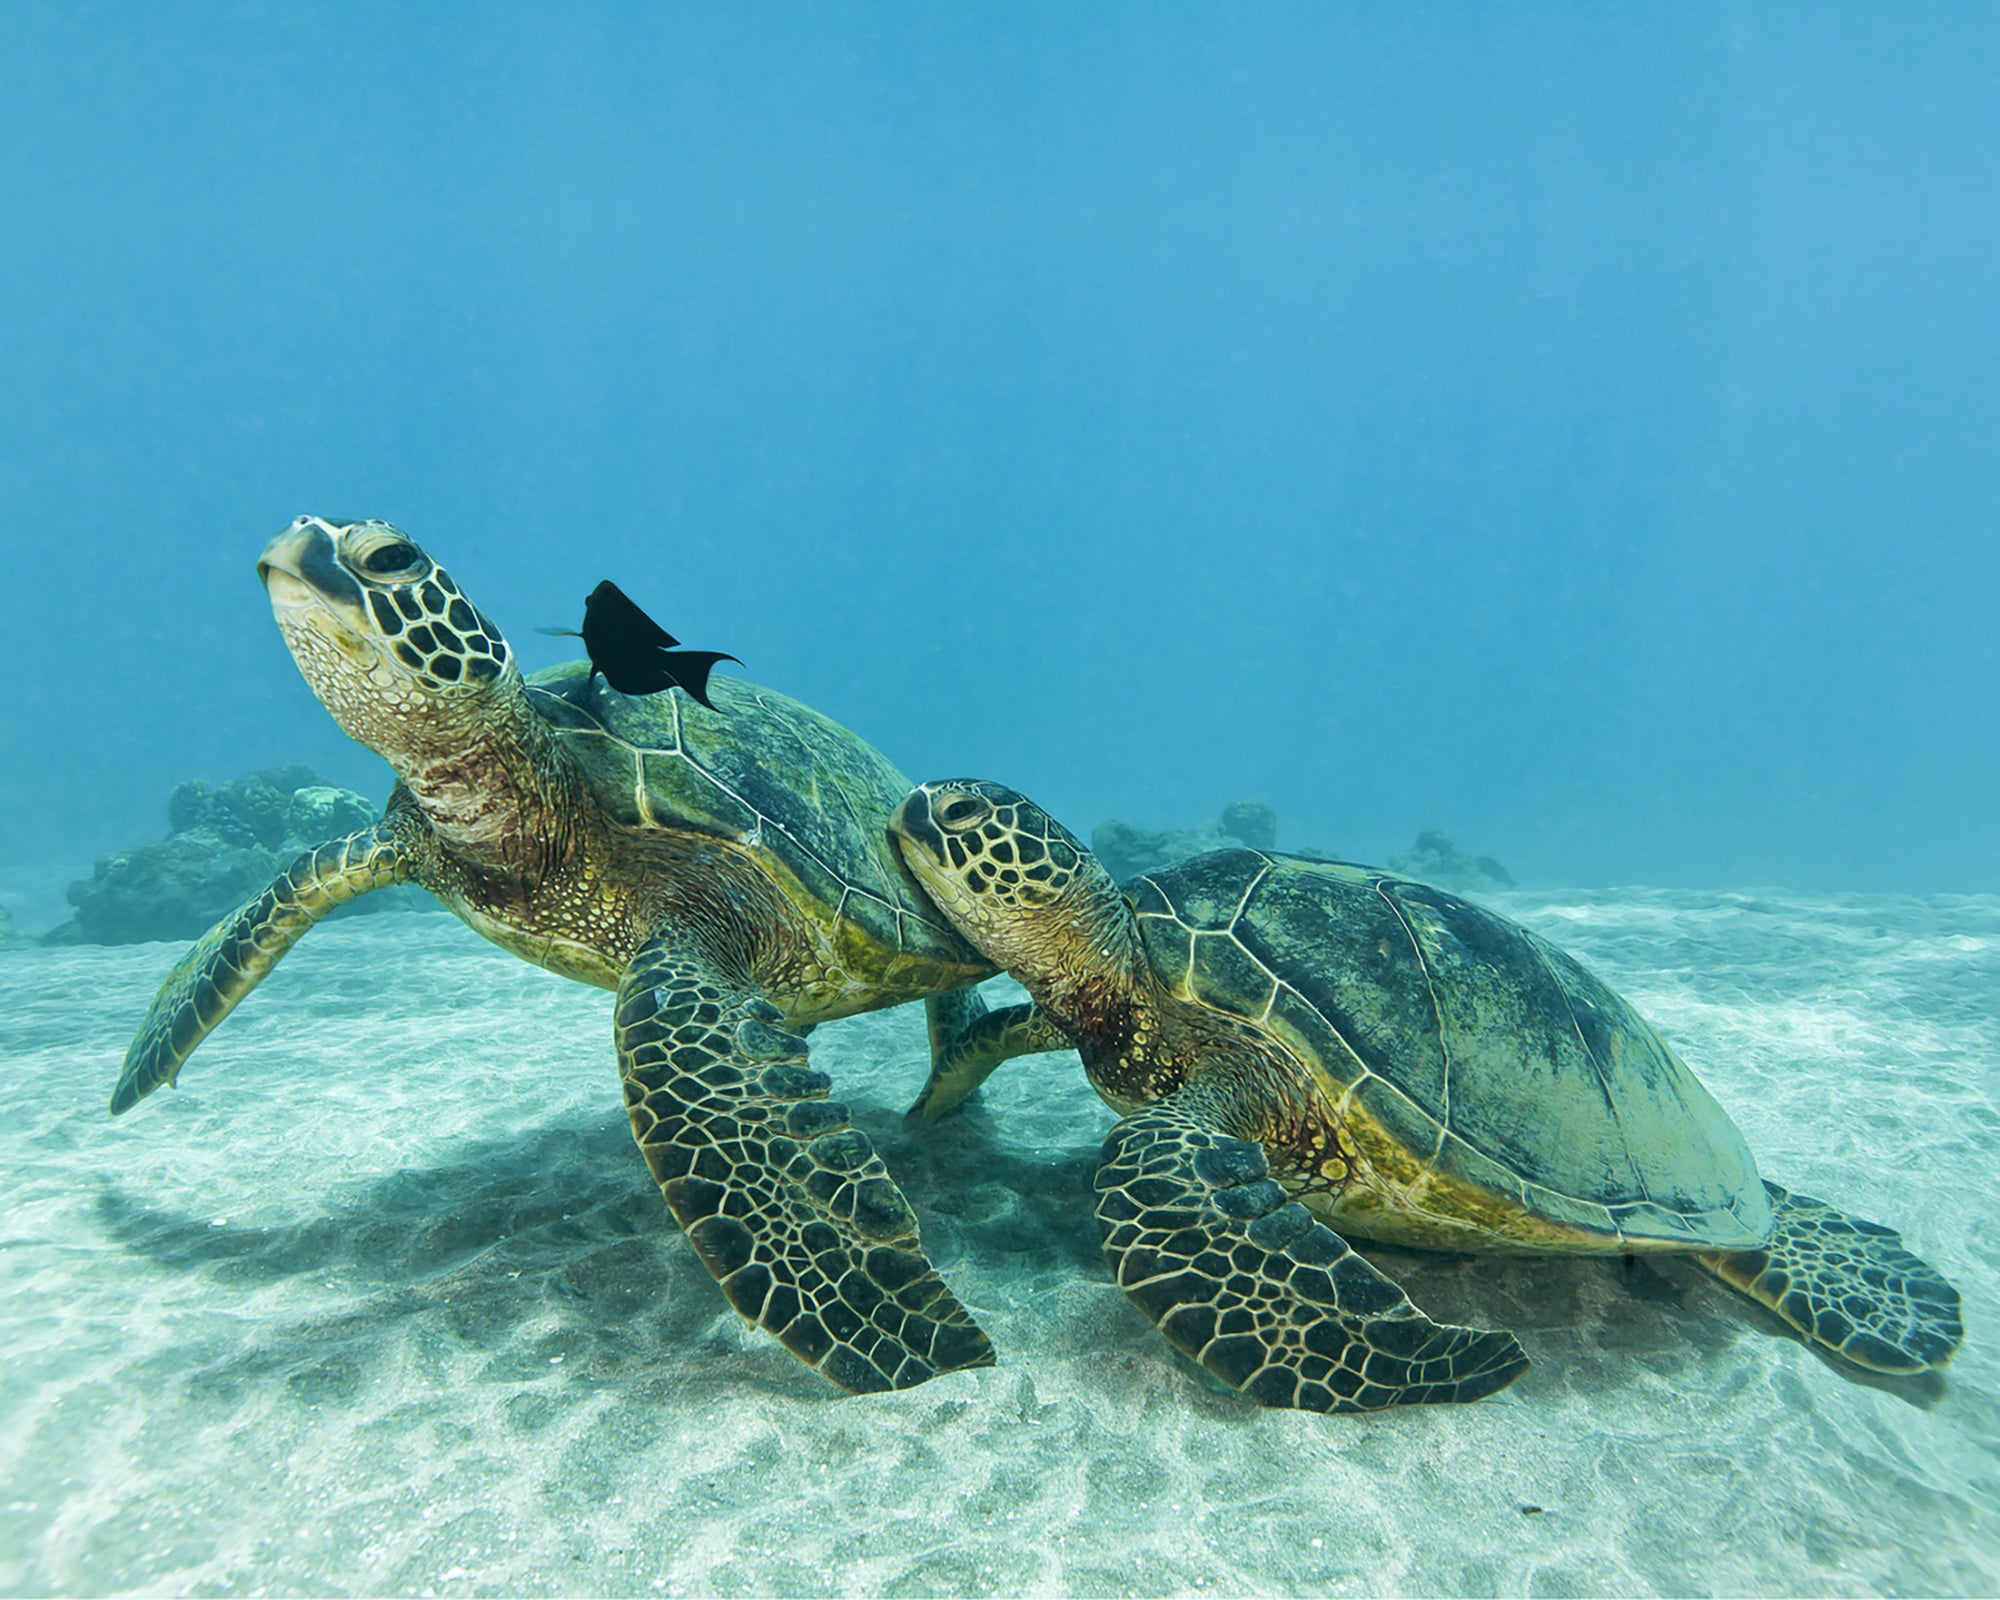 An underwater image of two turtles standing on the bottom of the ocean getting cleaned by some fish. The smaller turtle seems to be leaning on the larger one. The image was taken near Olawalu on Maui.